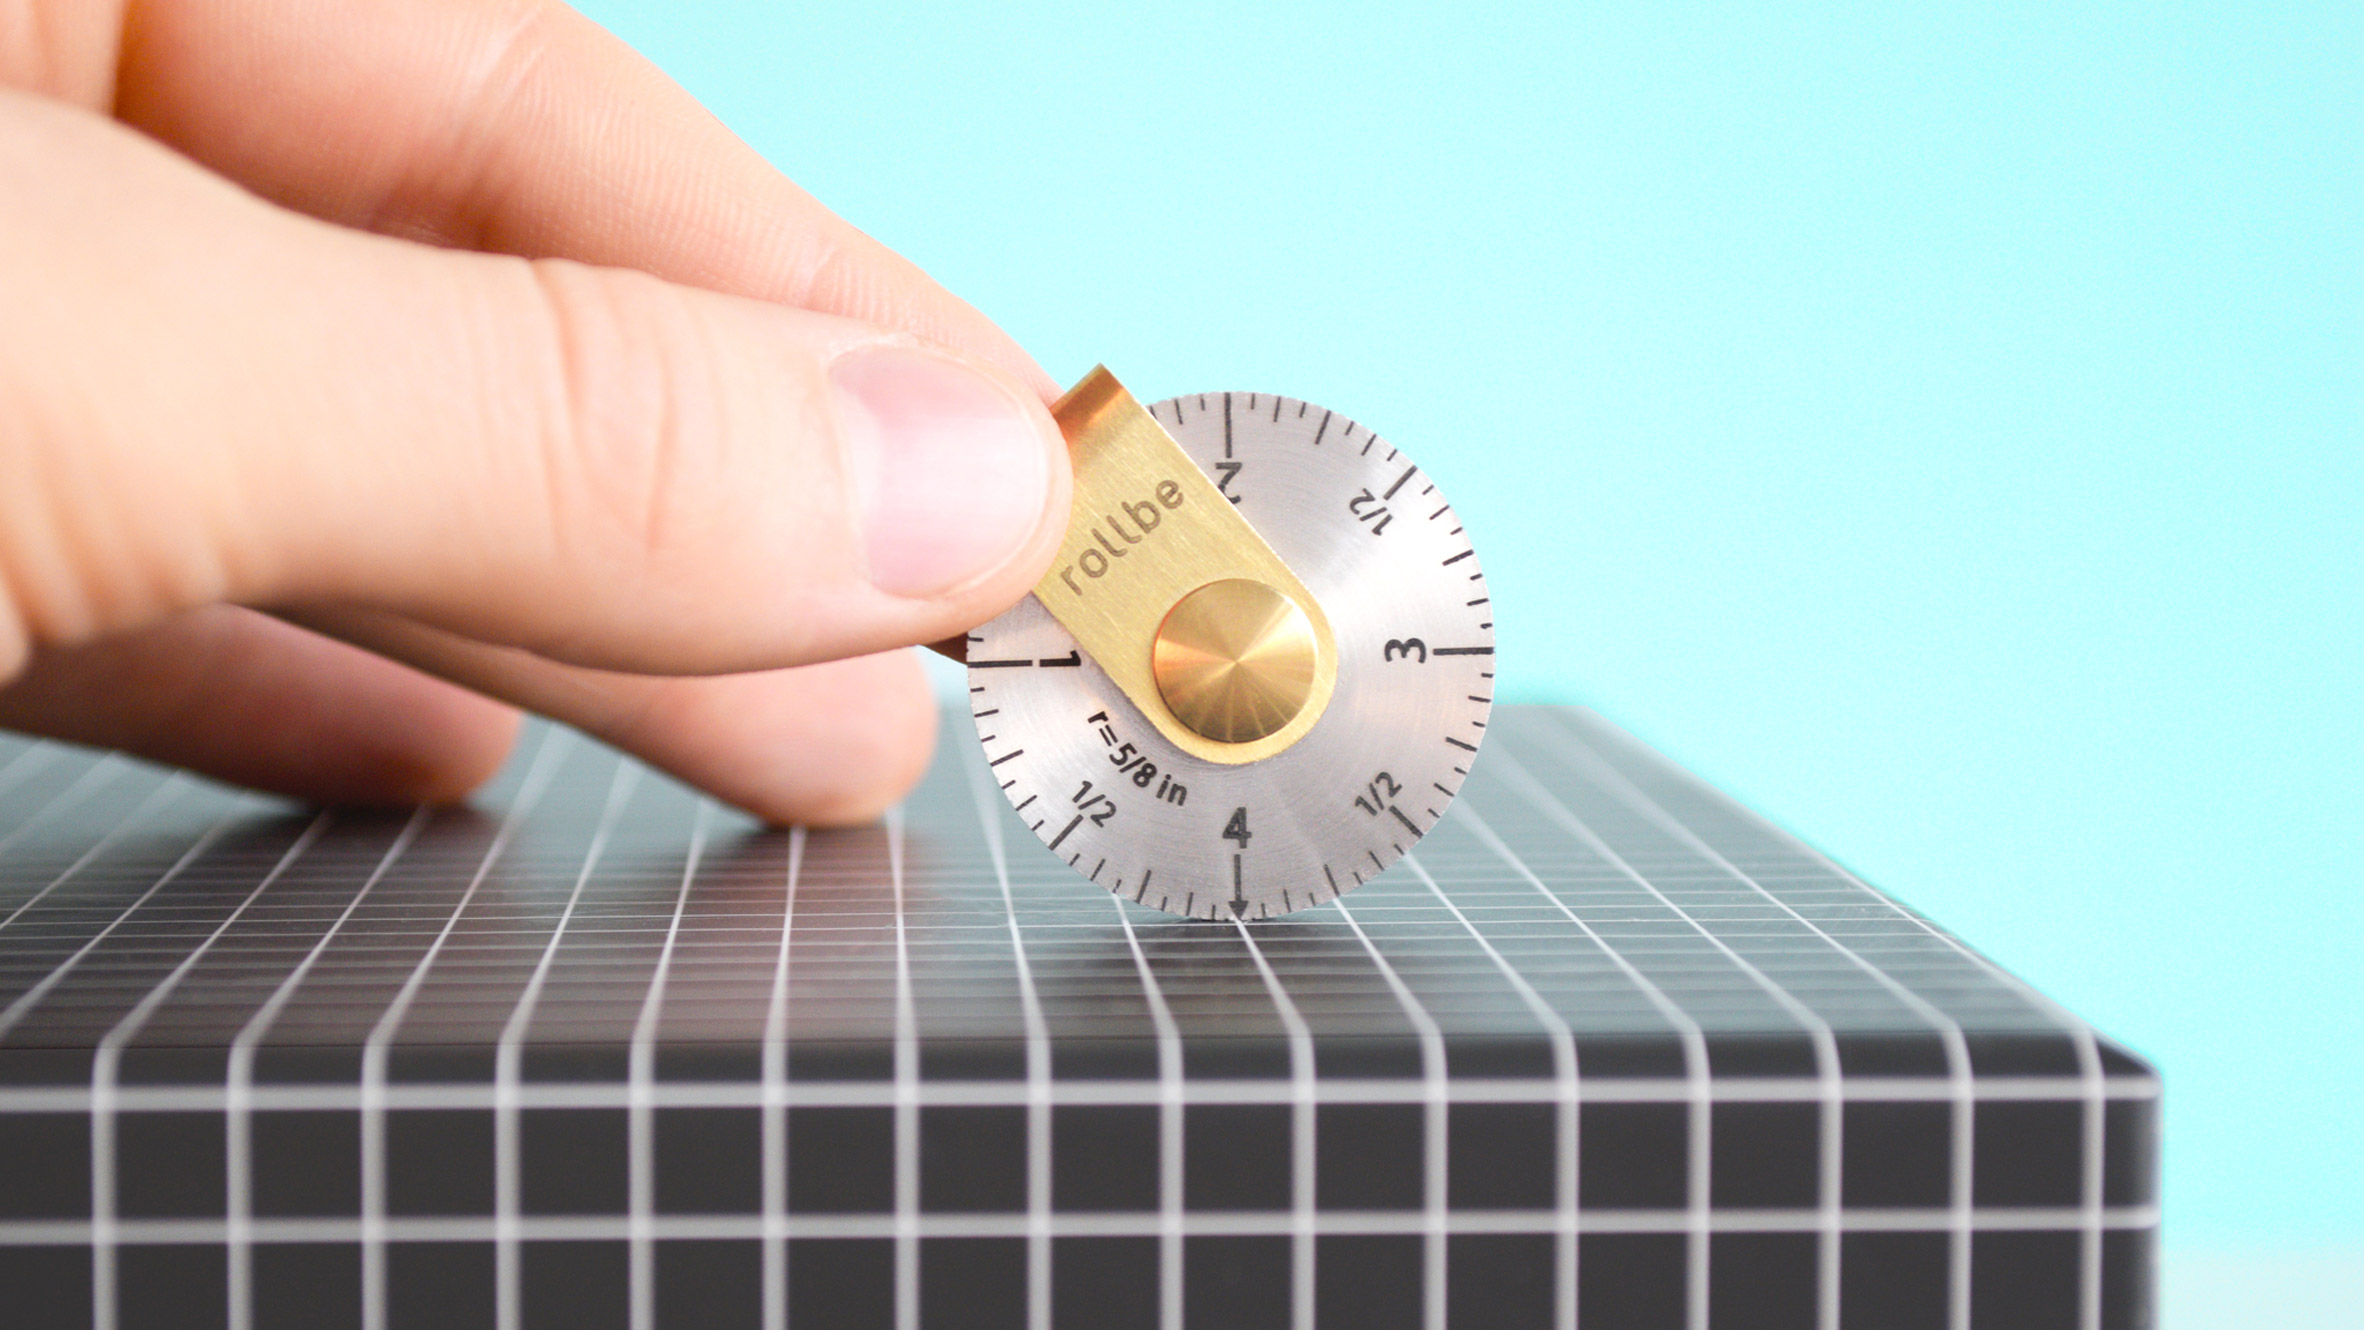 Coin-sized Rollbe measuring wheel can be kept in a purse or pocket